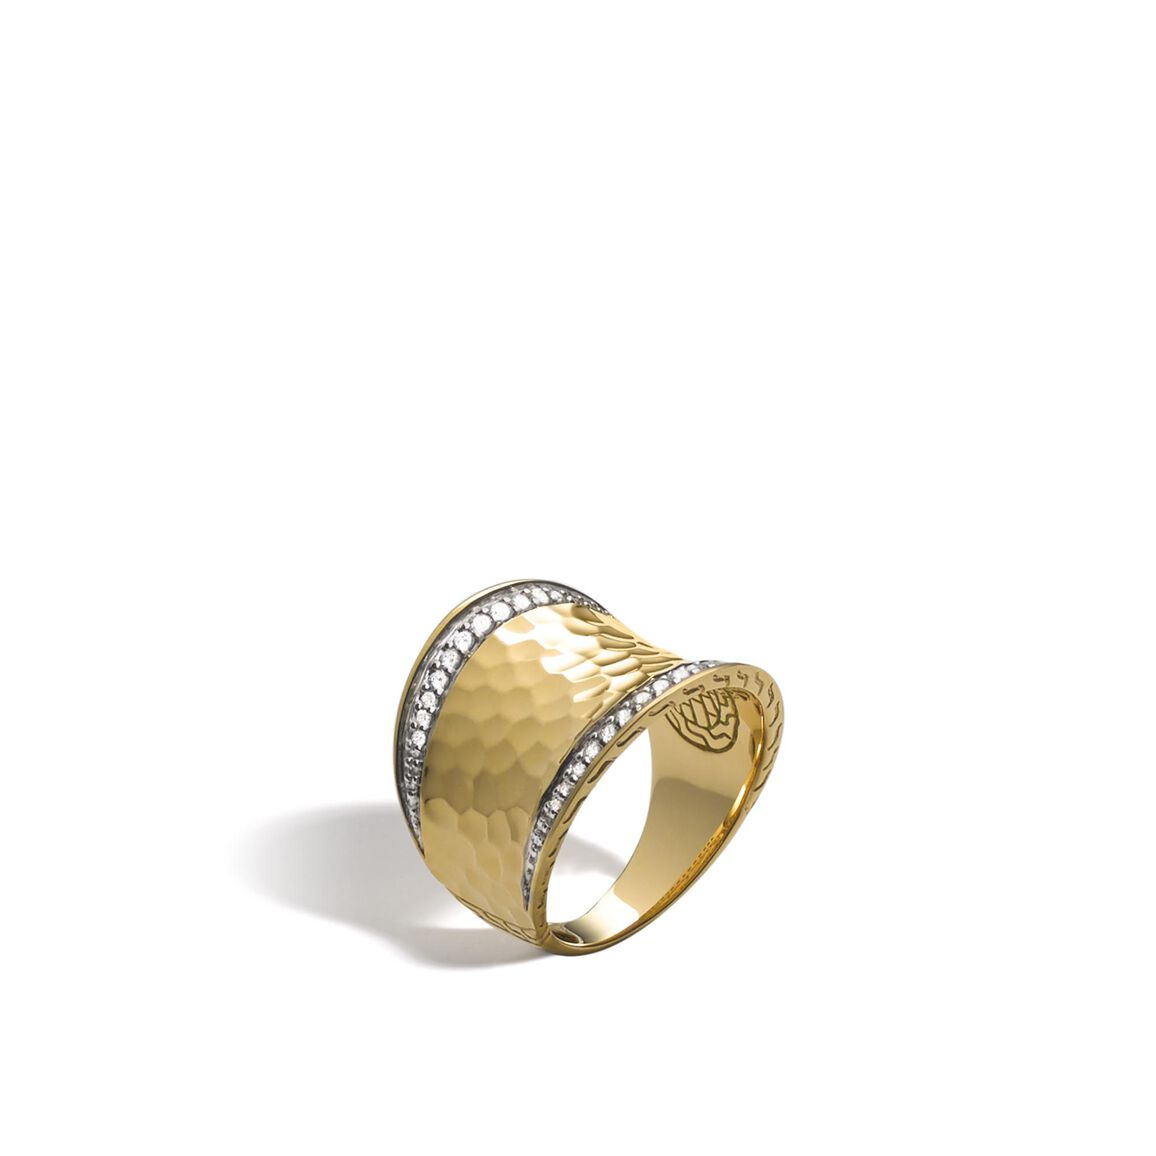 Classic Chain Saddle Ring in Hammered 18K Gold with Diamonds